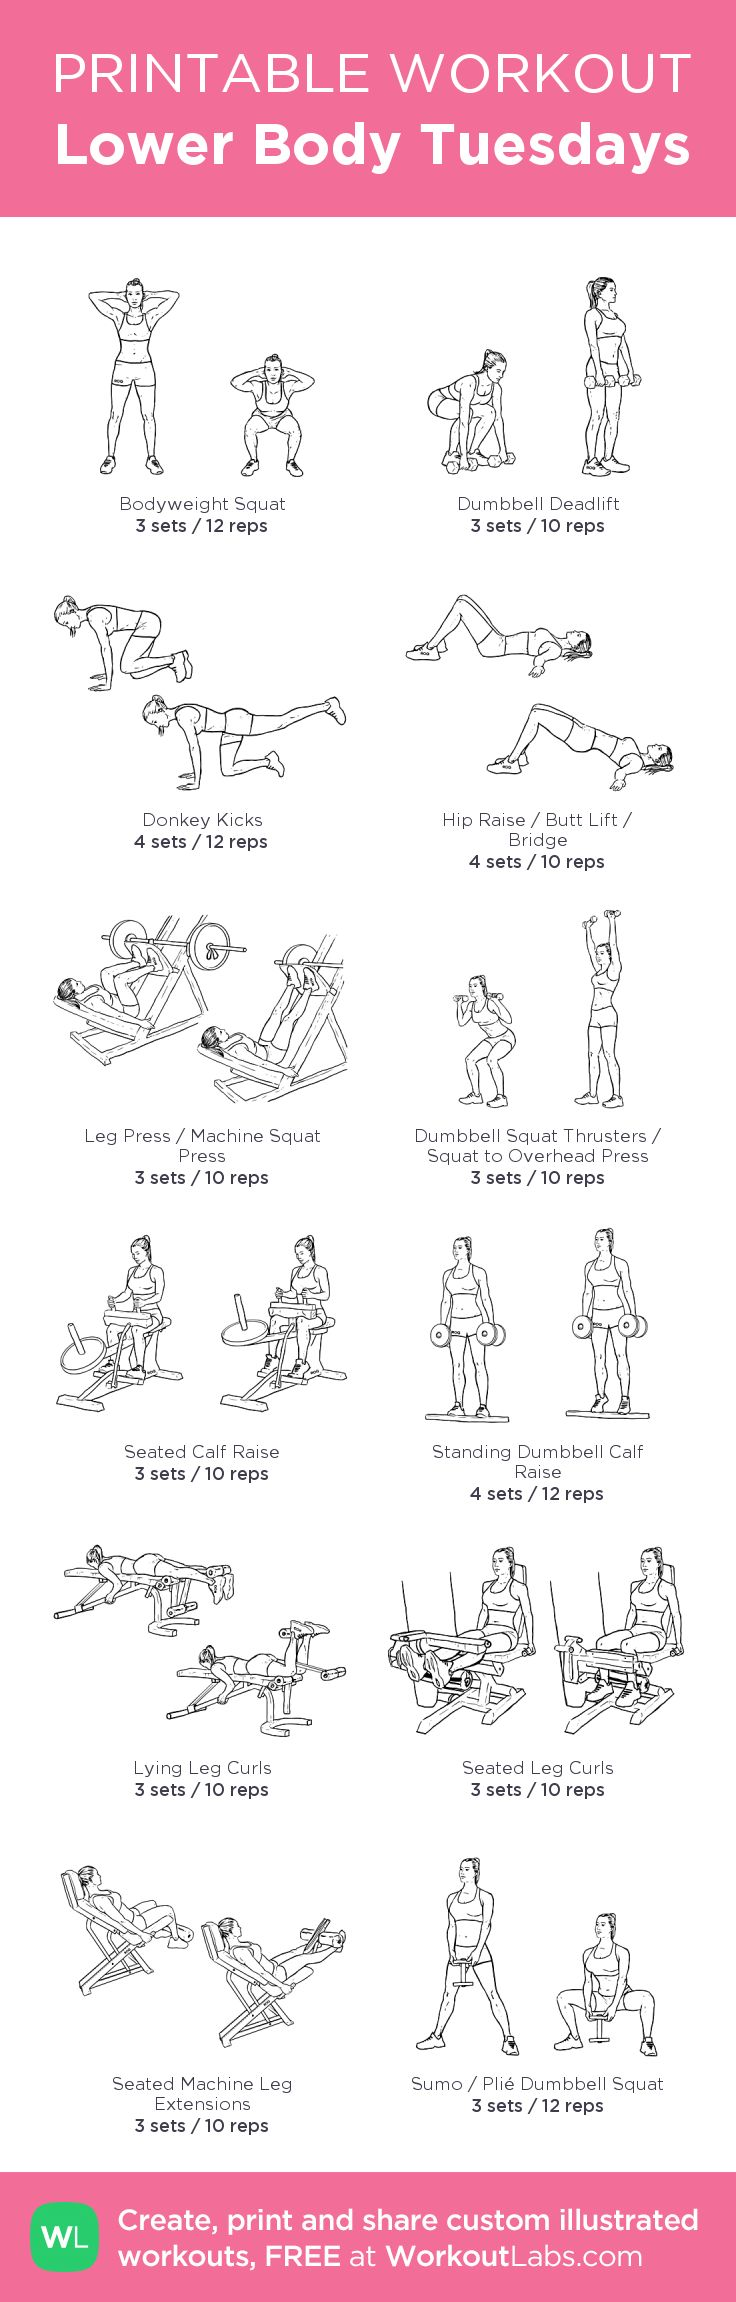 Lower Body Tuesdays –my custom workout created at WorkoutLabs.com